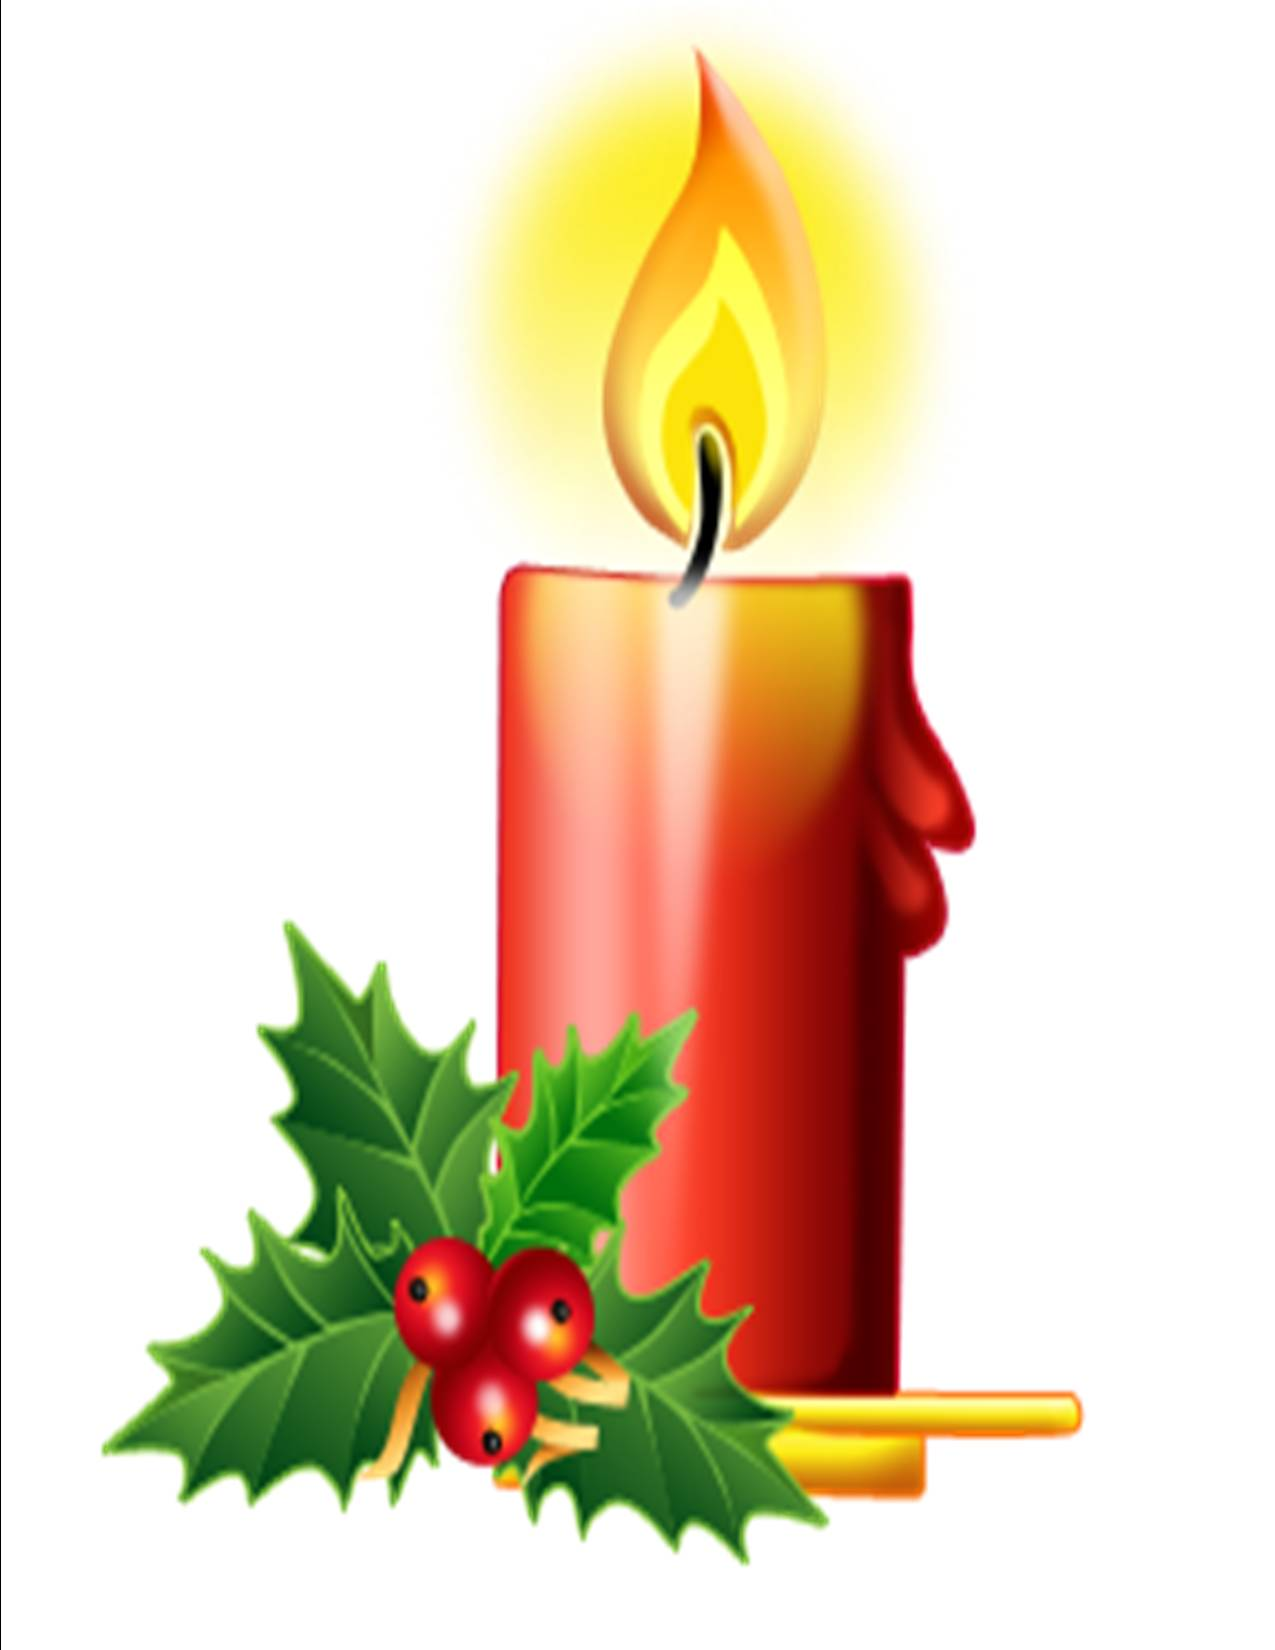 Christmas candle clipart suggest